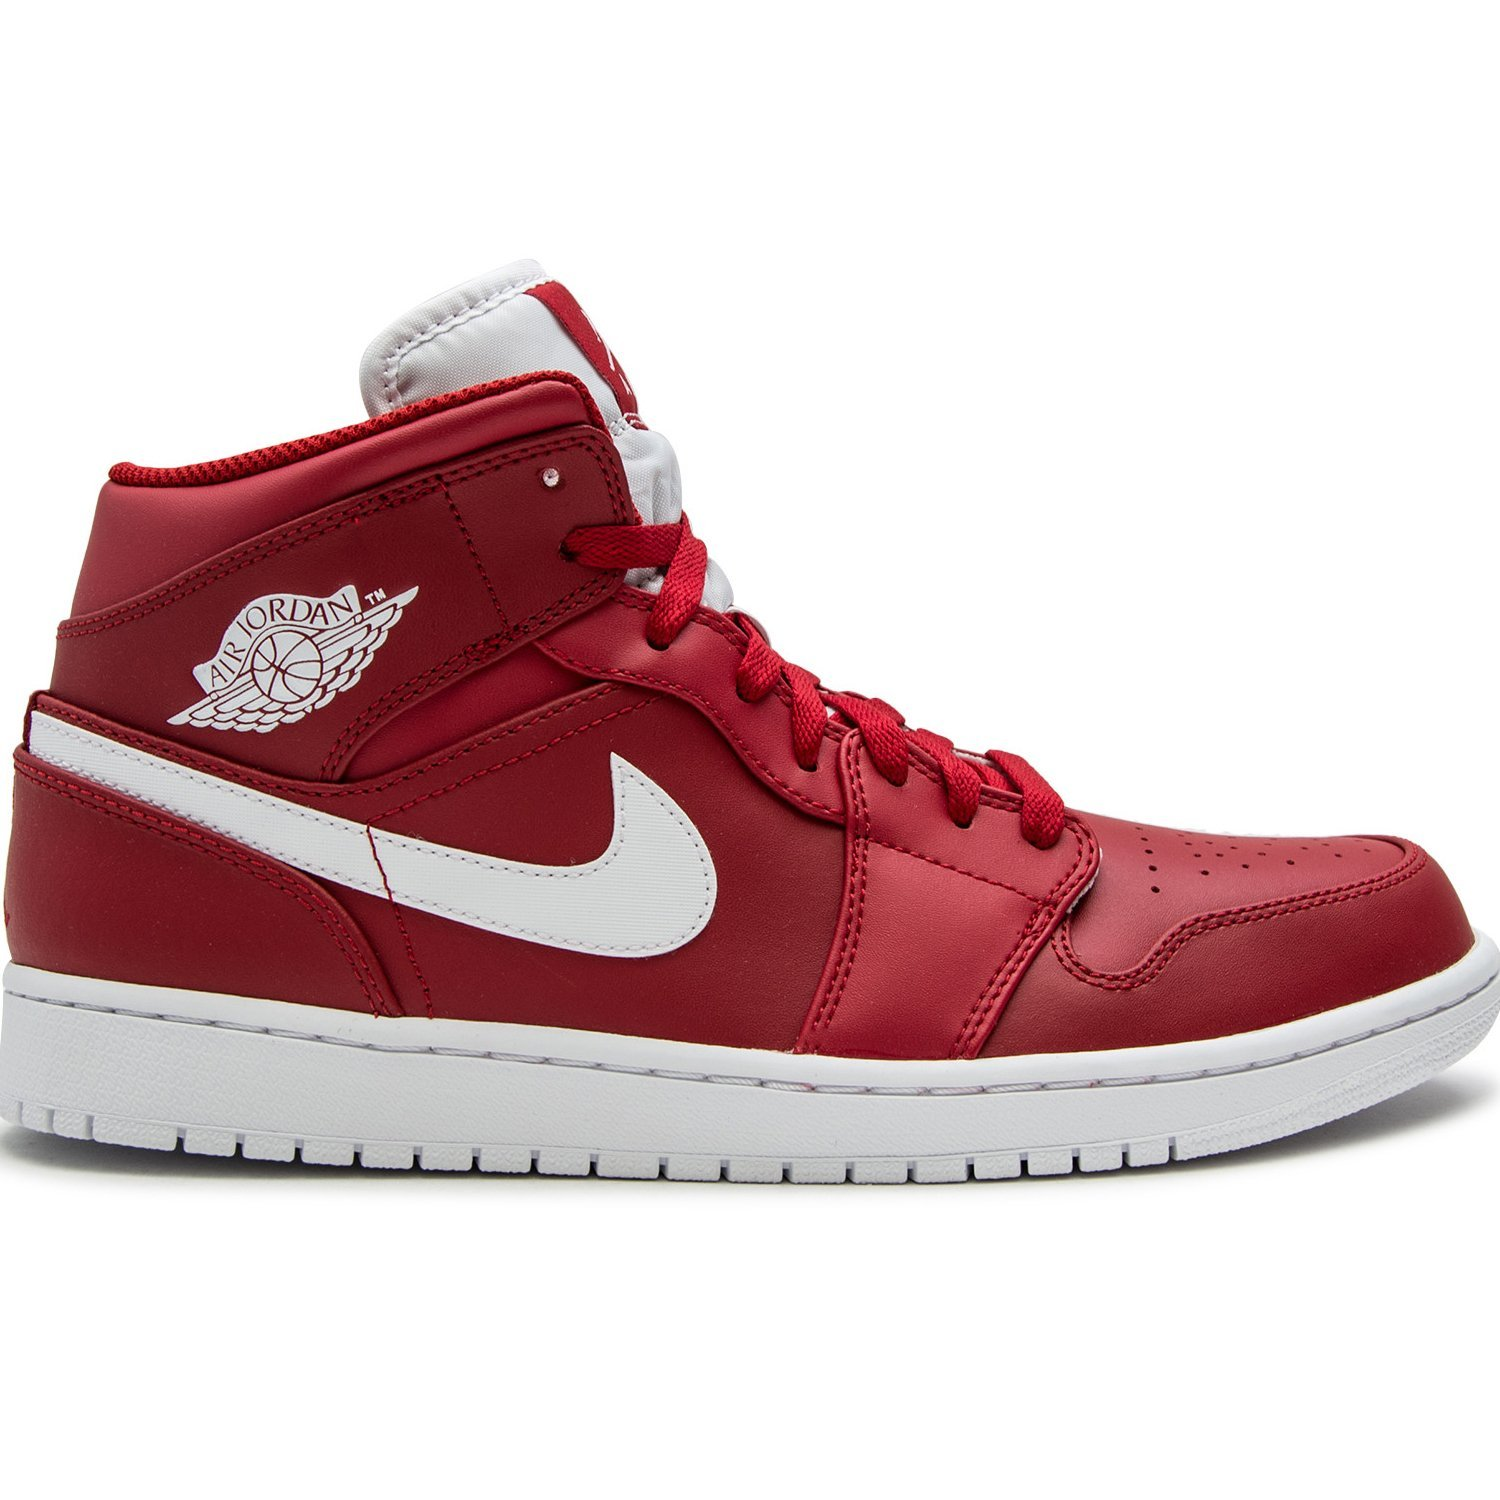 7e8bf3a5031886 Get Quotations · Jordan Men s Air 1 Mid